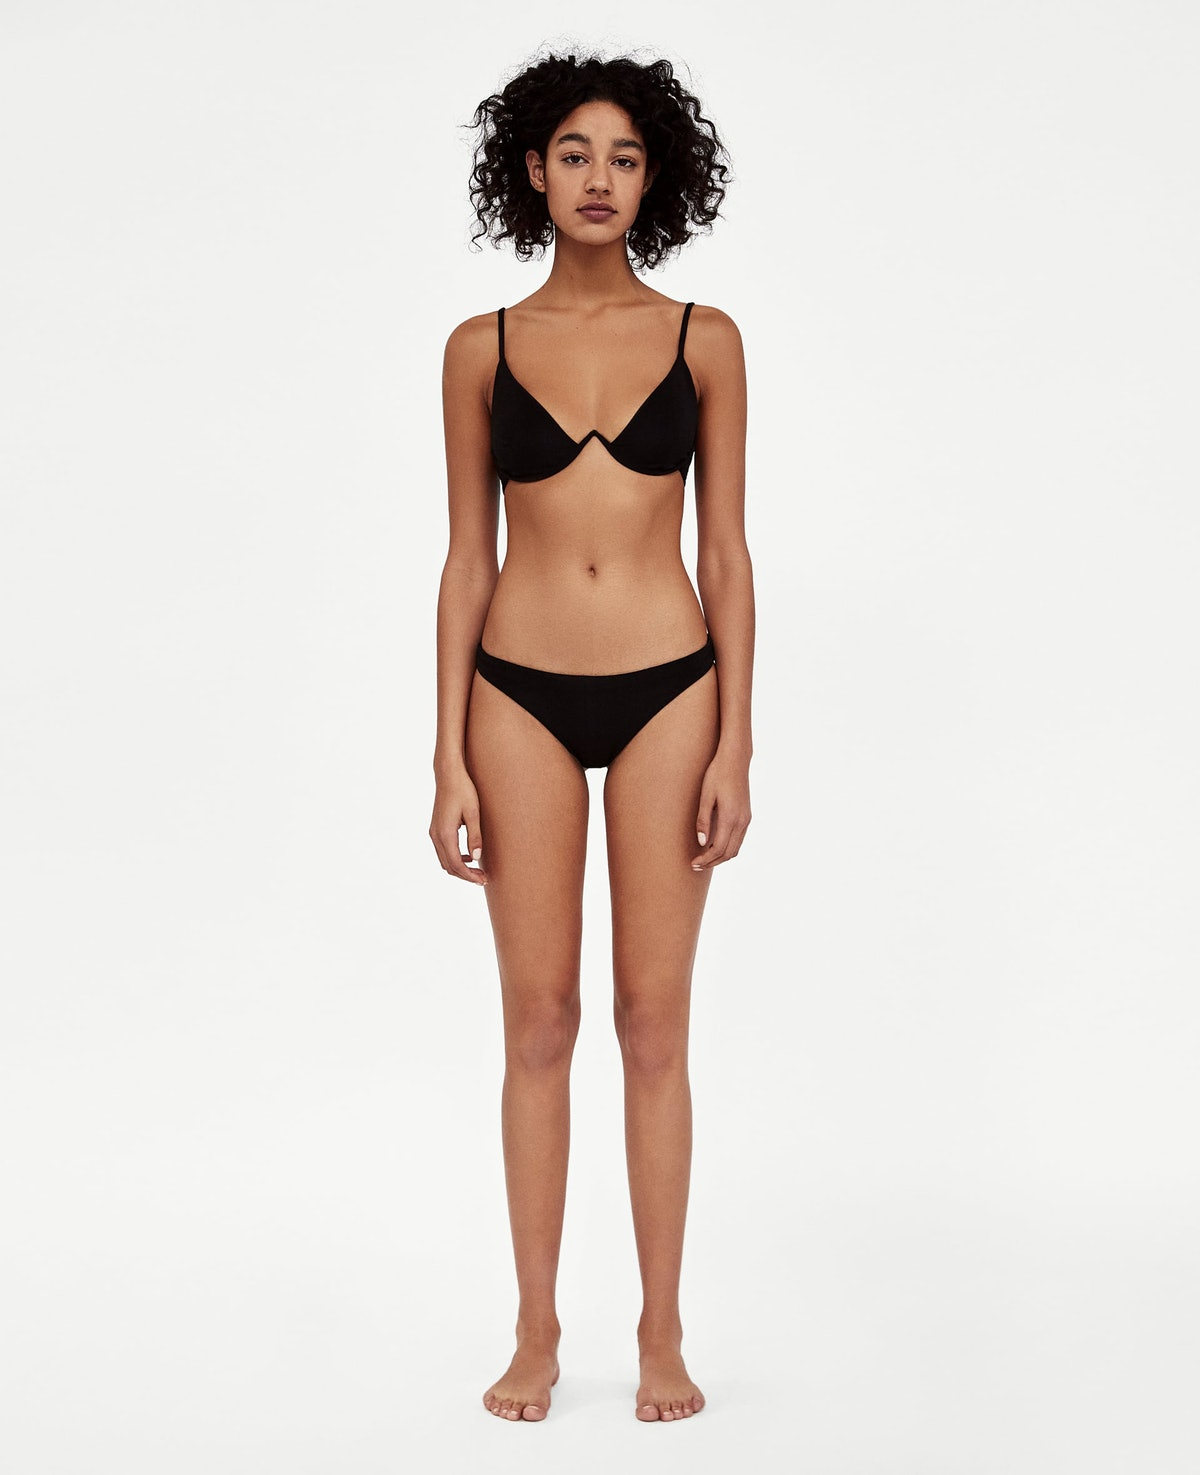 V-Neck Textured Weave Bikini Top and Bottoms